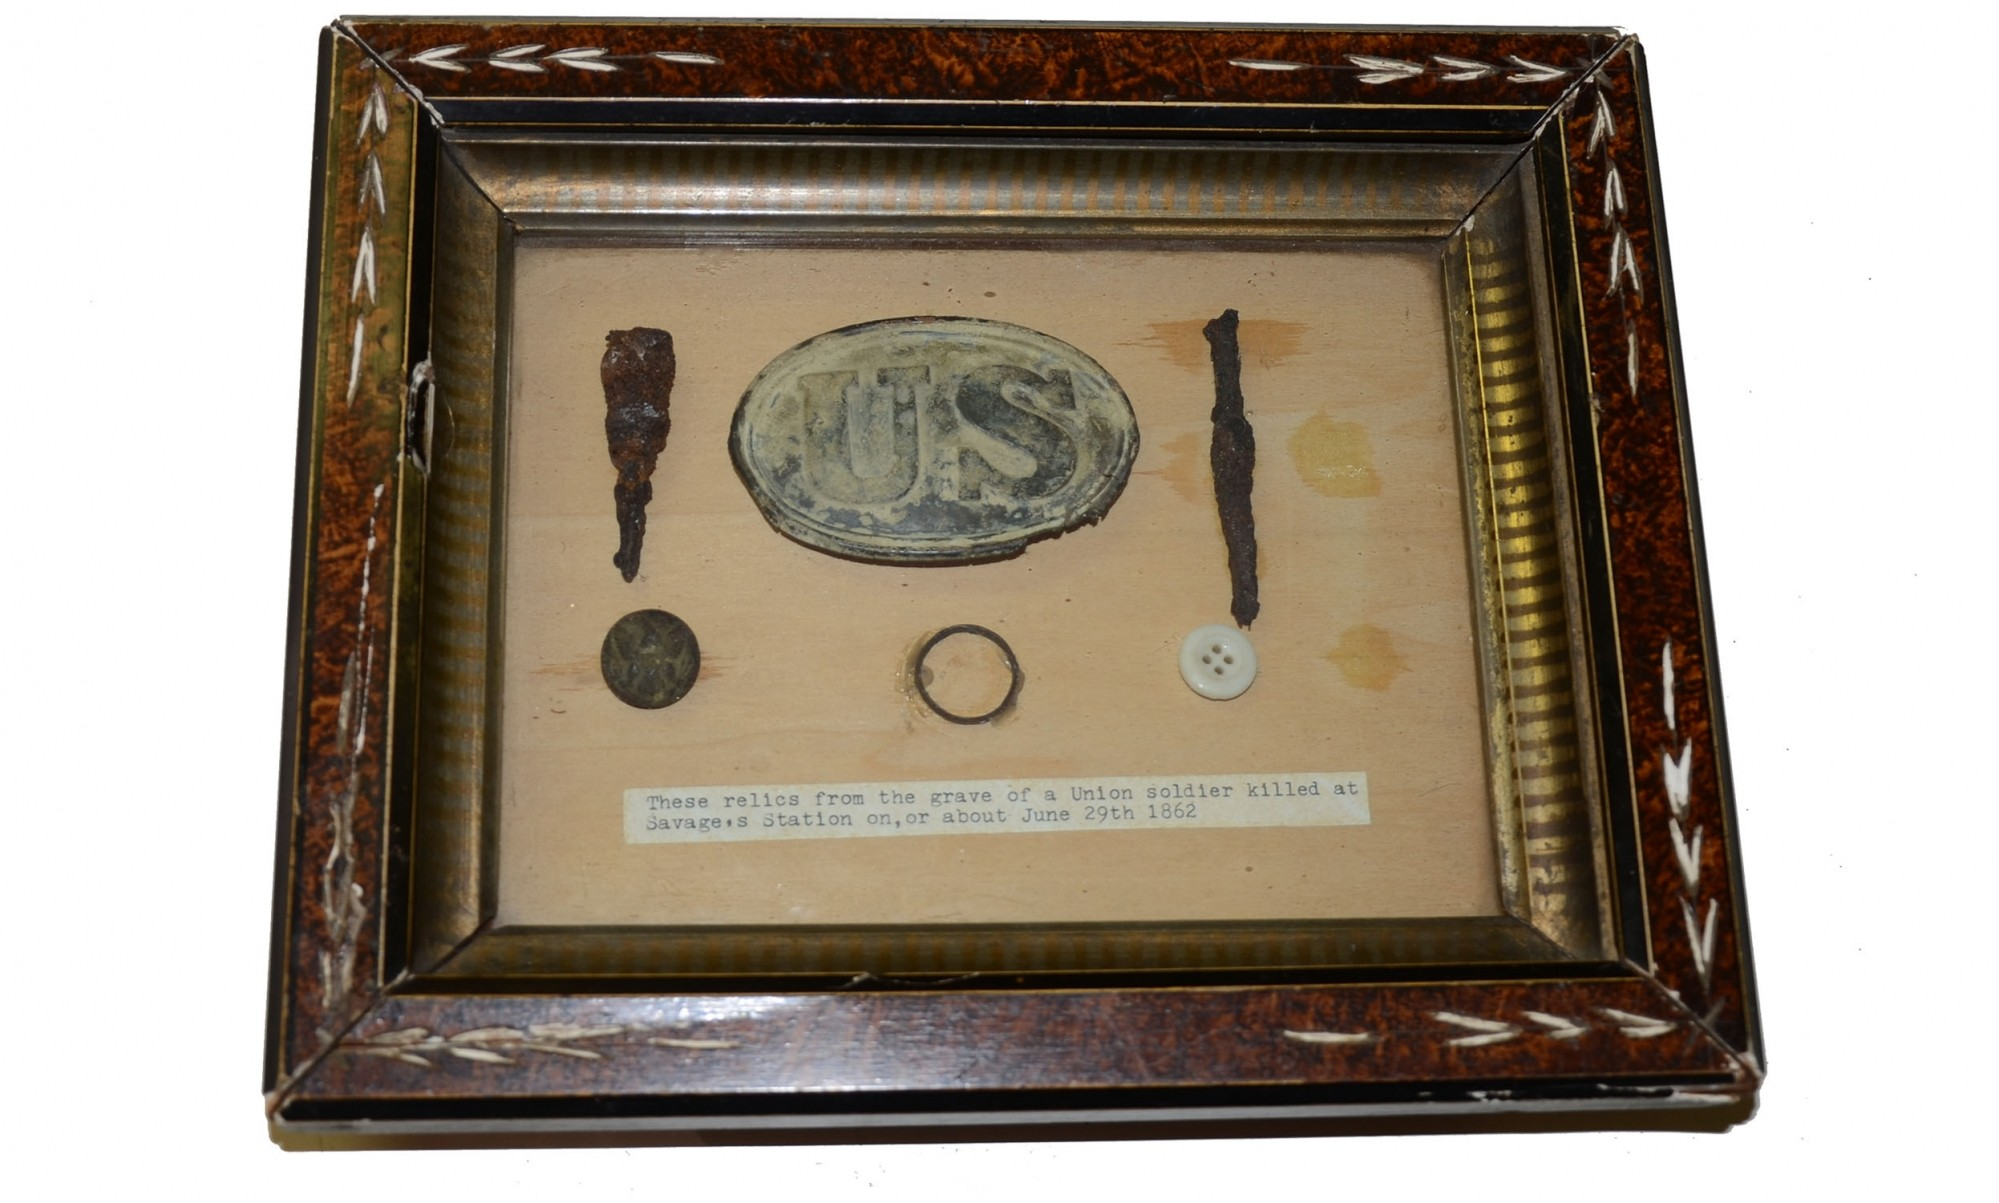 SHADOW BOX OF ITEMS RECOVERED FROM GRAVE AT SAVAGE'S STATION